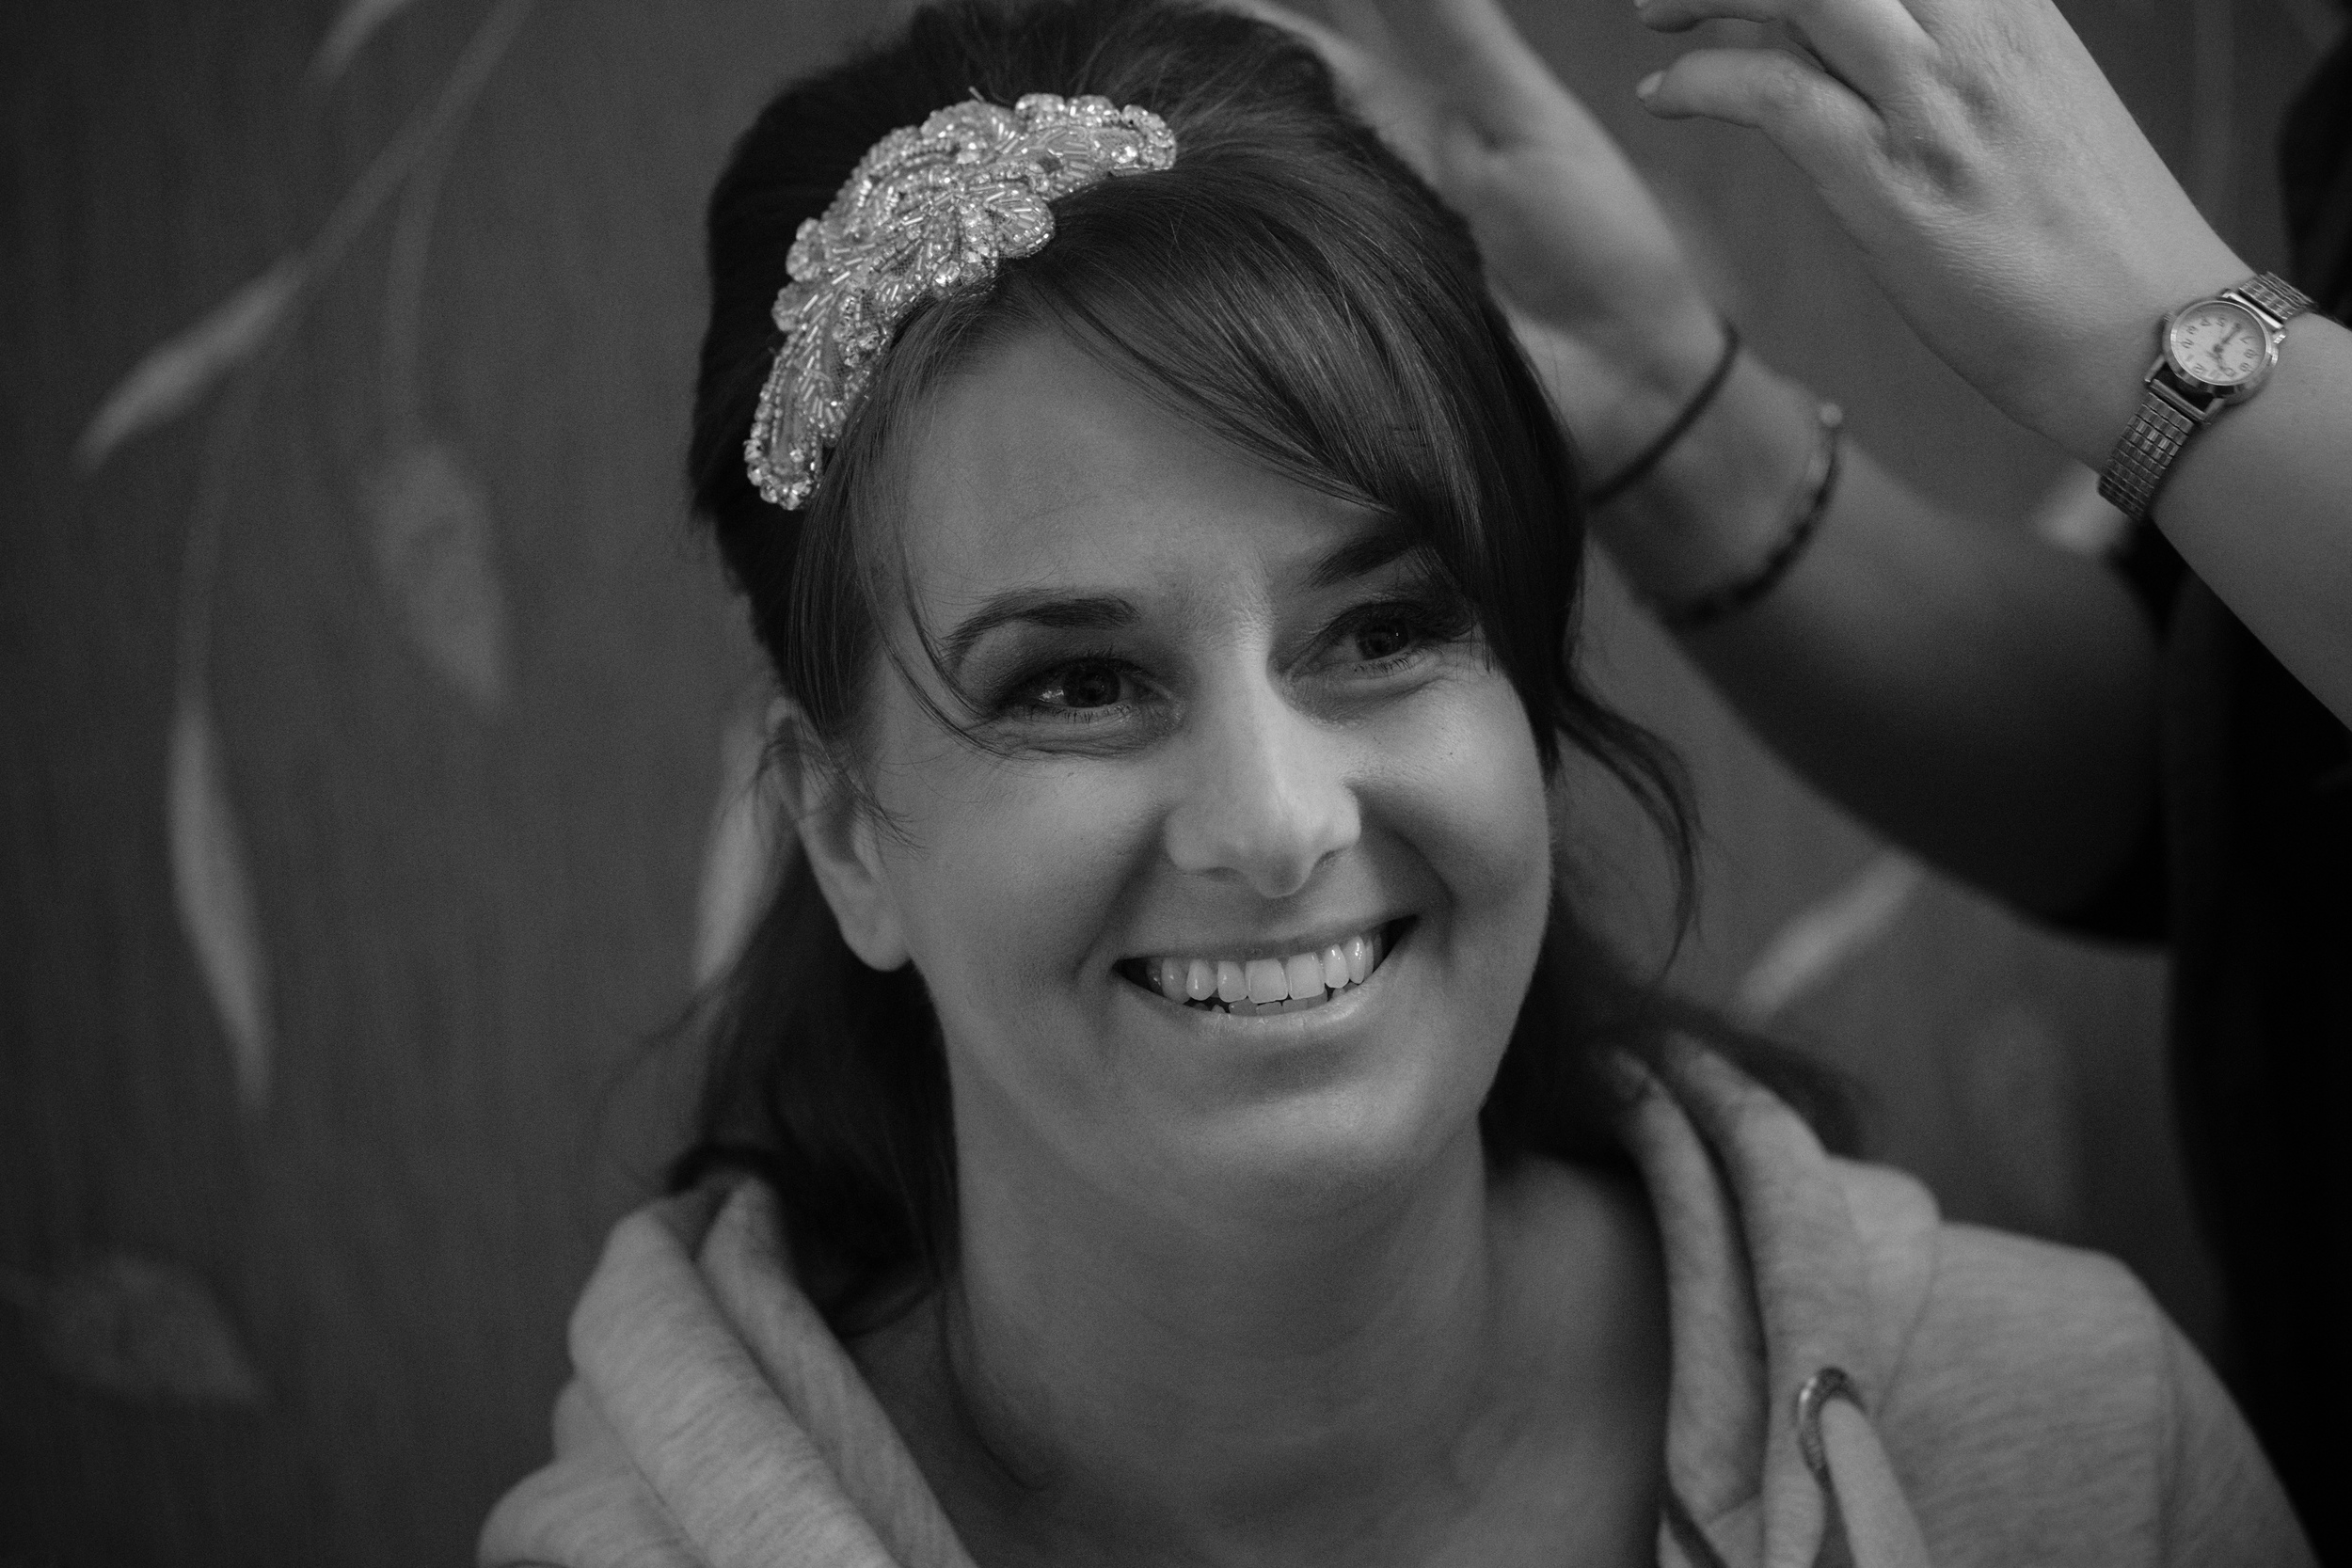 Newcastle Wedding Photographer // Bride smiling while getting ready